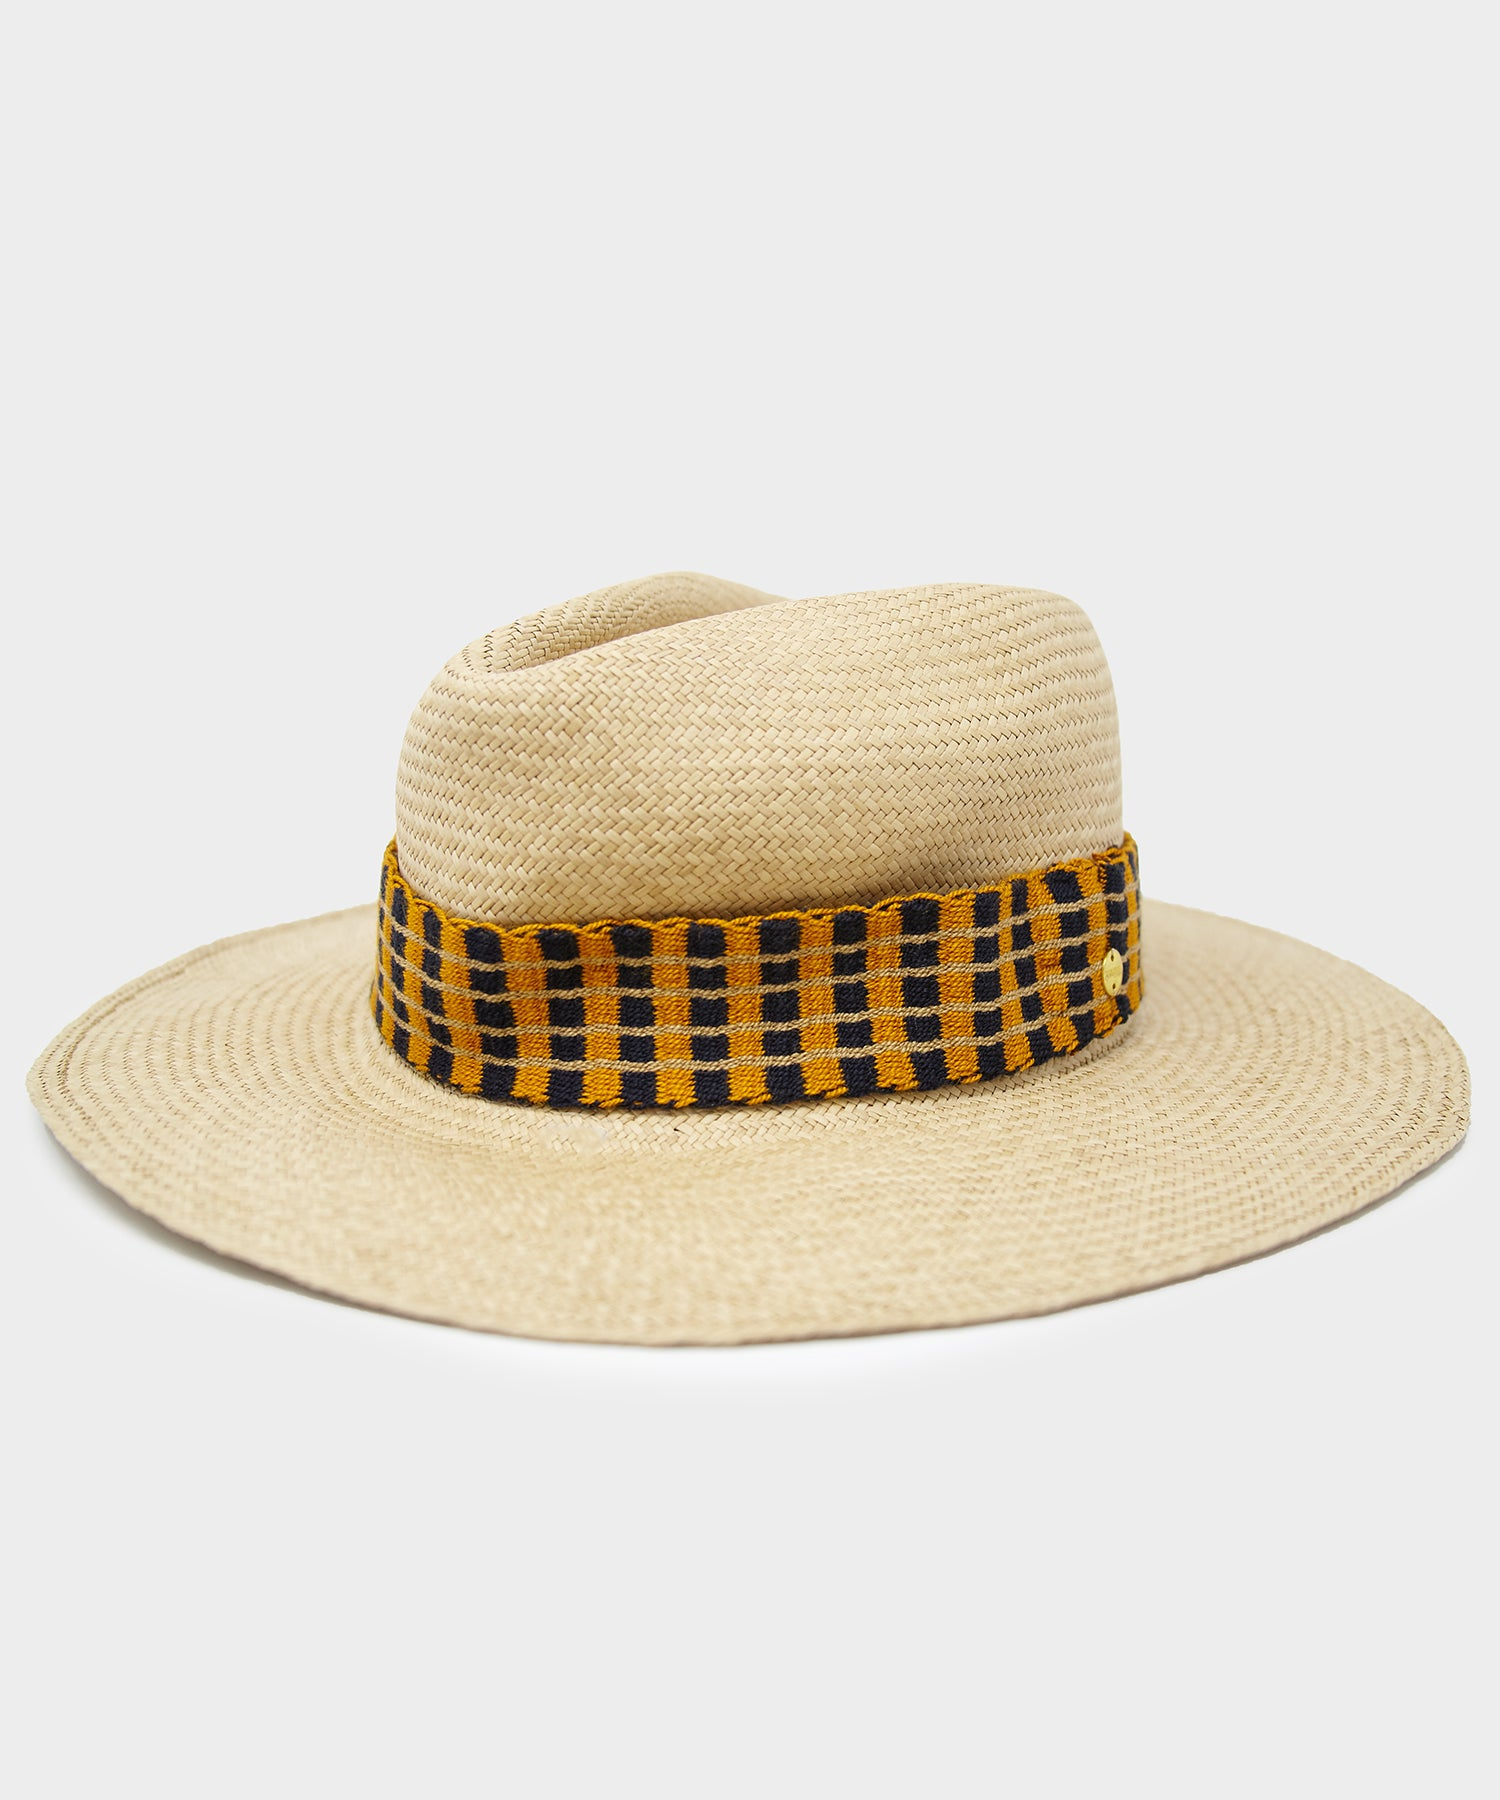 Guanábana Panama Hat with navy and yellow band